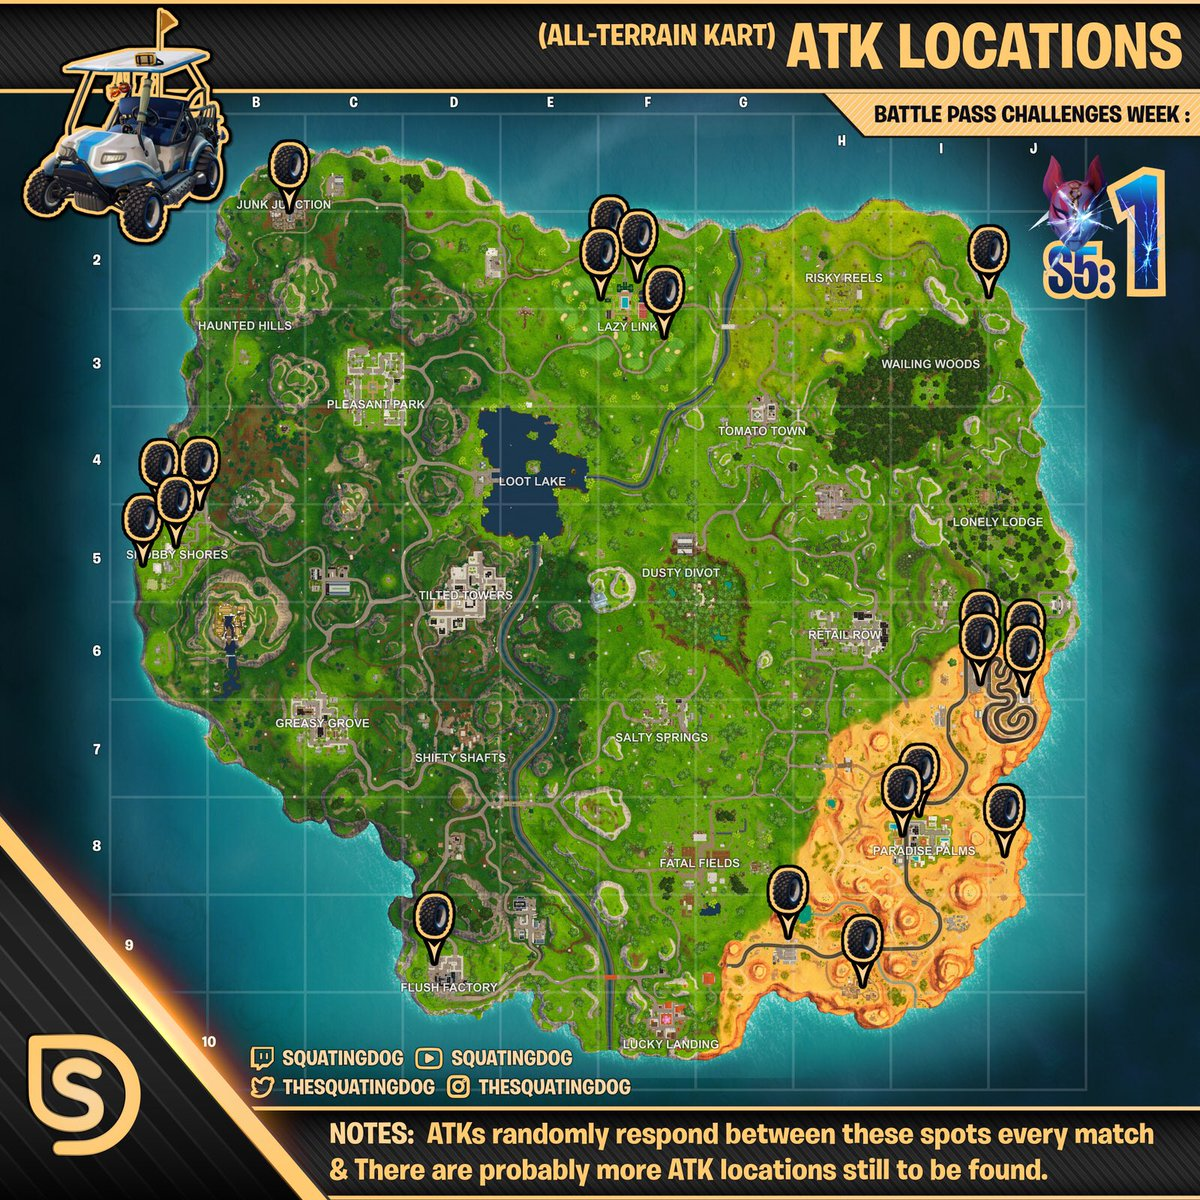 Squatingdog On Twitter Quot Does Your Squad Need Help Finding